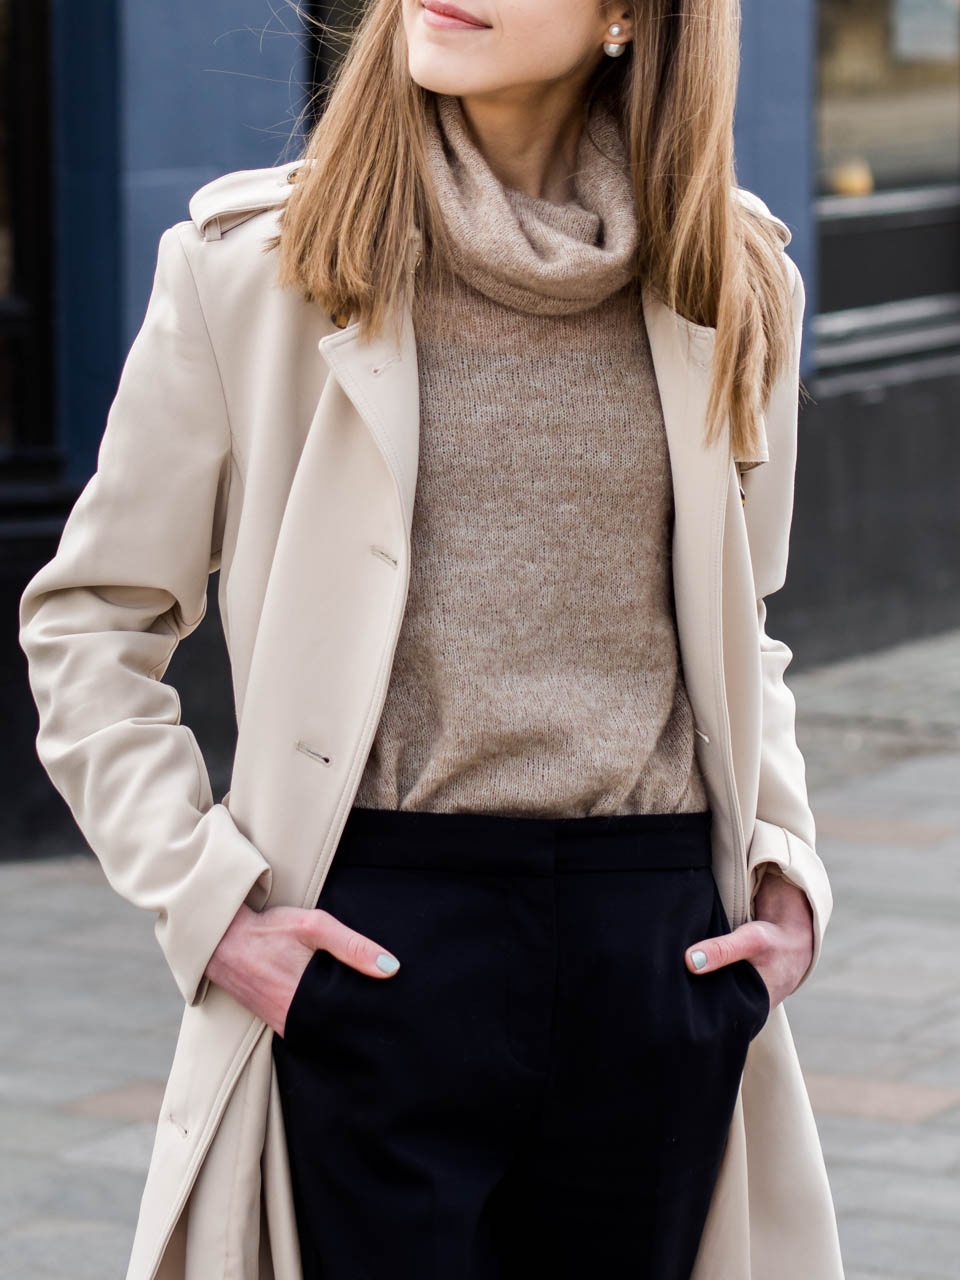 trench-coat-outfit-inspiration-spring-2019